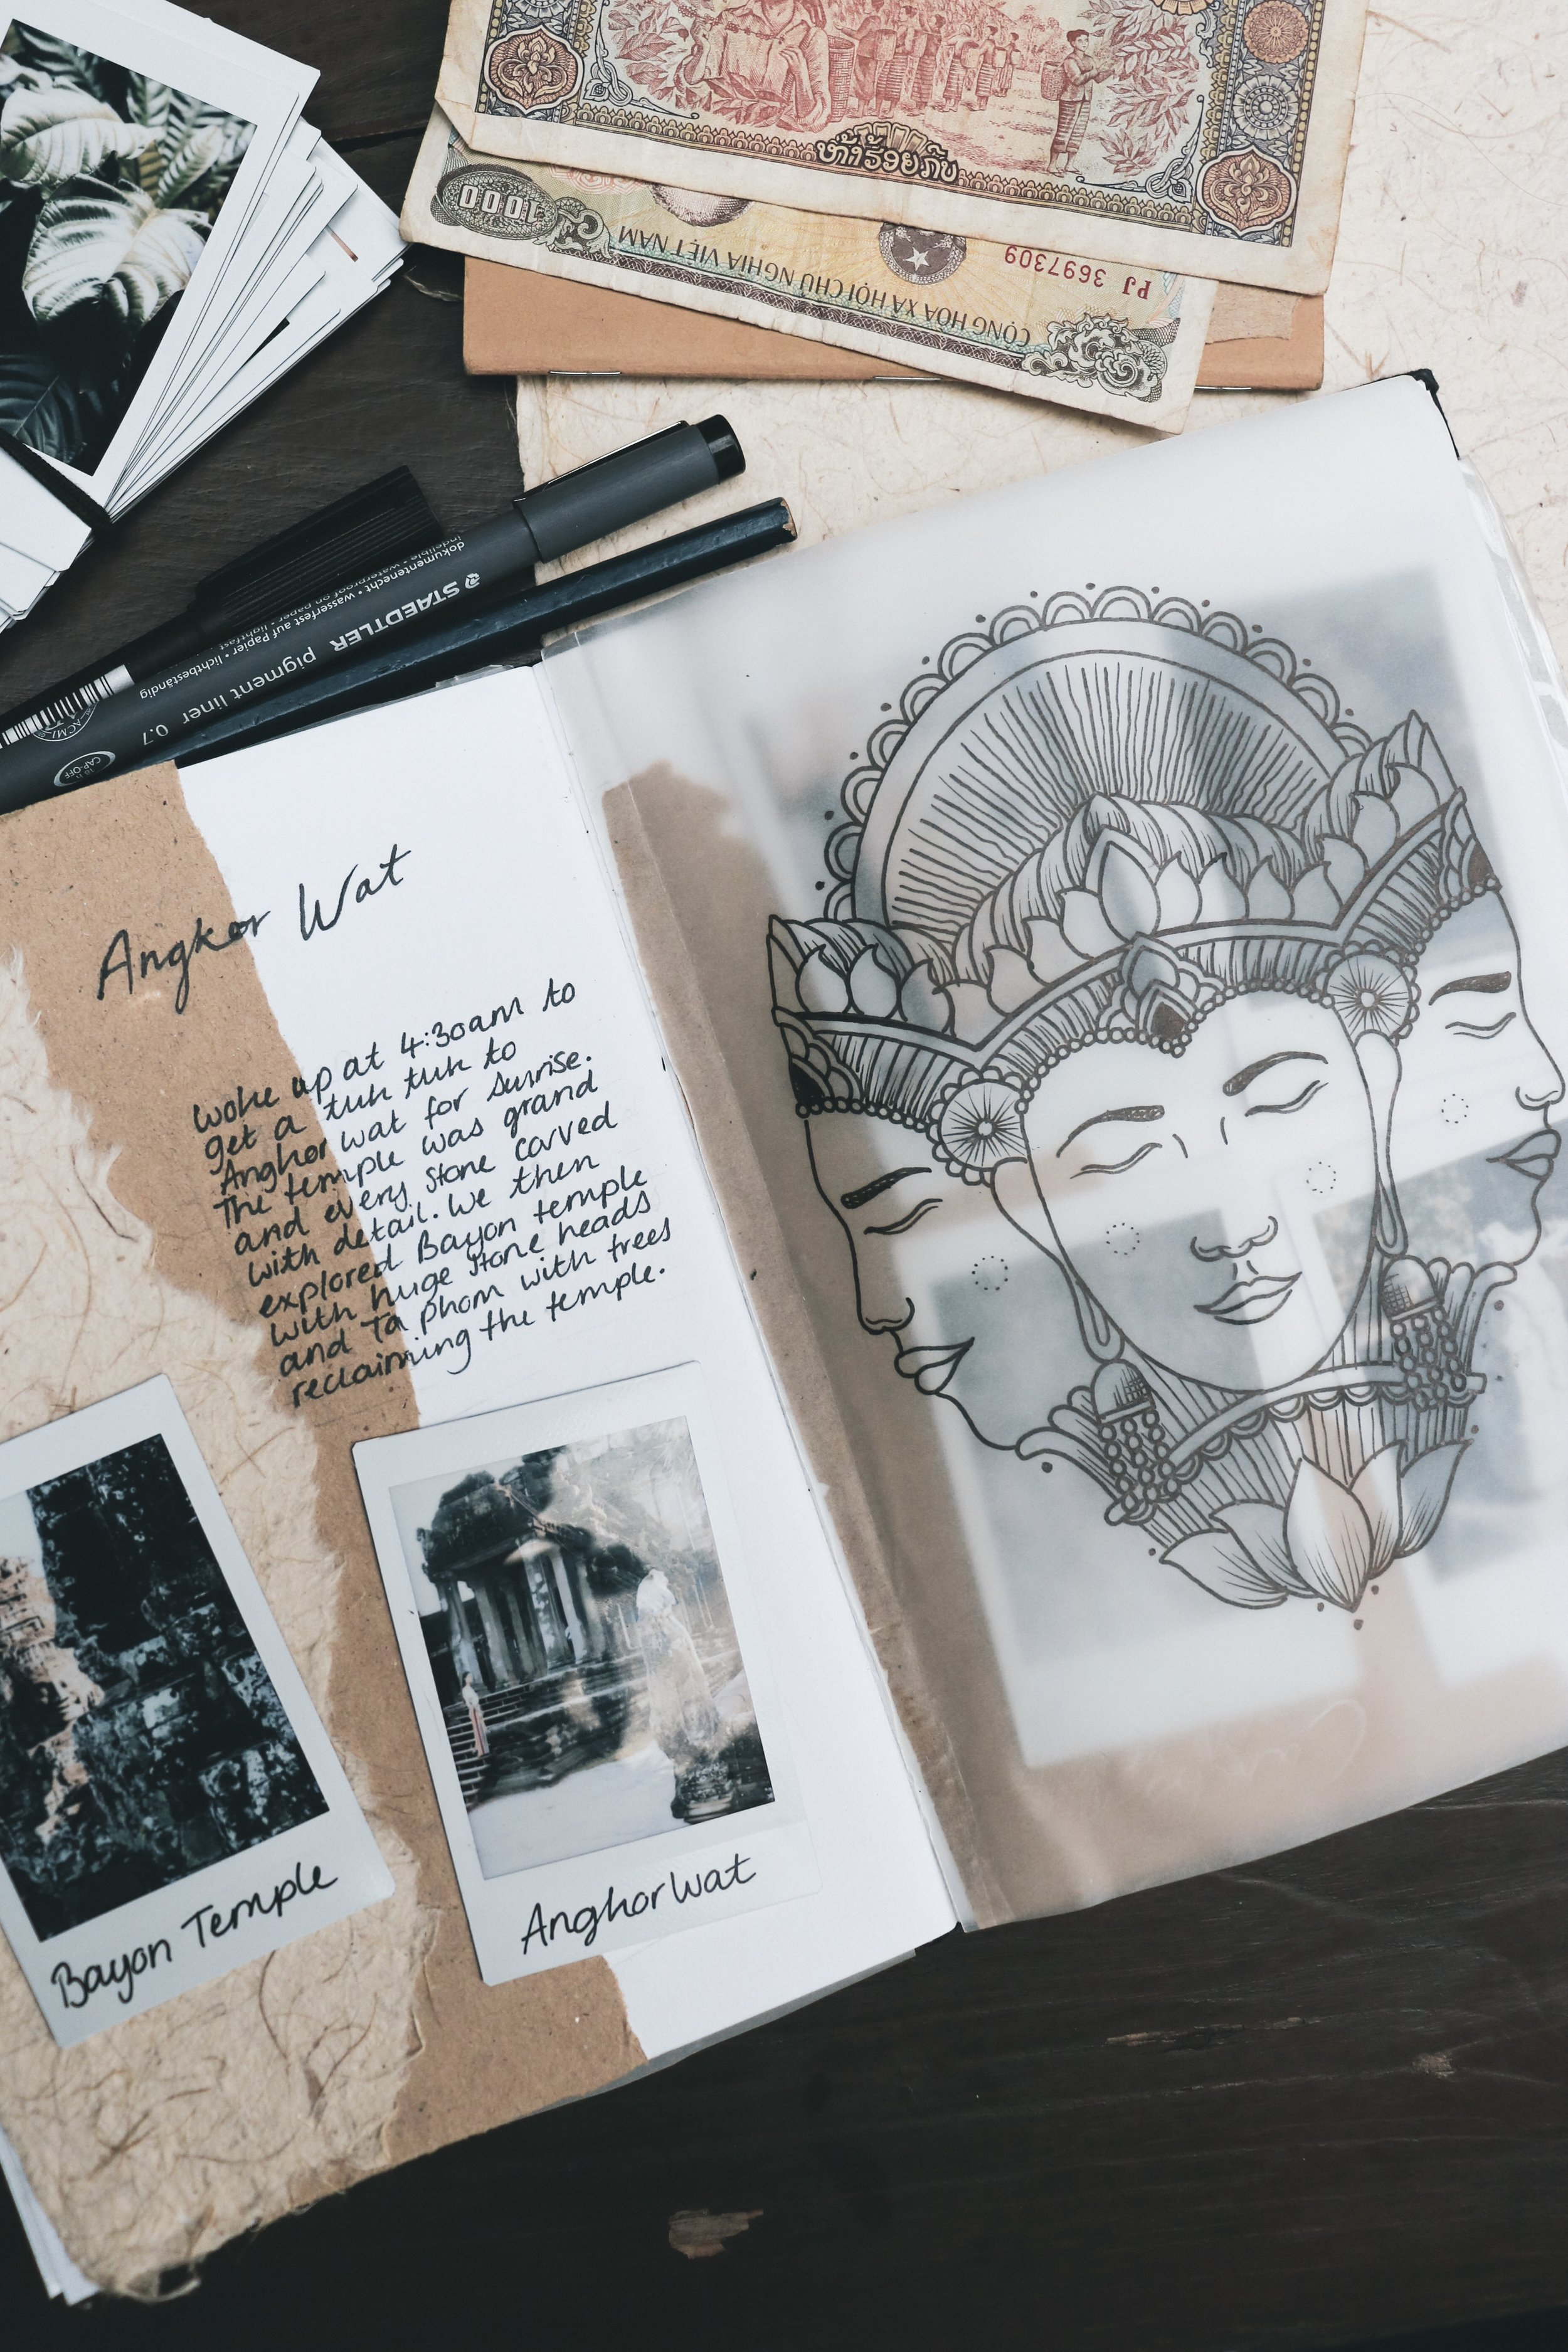 Journal Illustration Inspired by the Temple of Bayon, drawn while travelling through Cambodia.